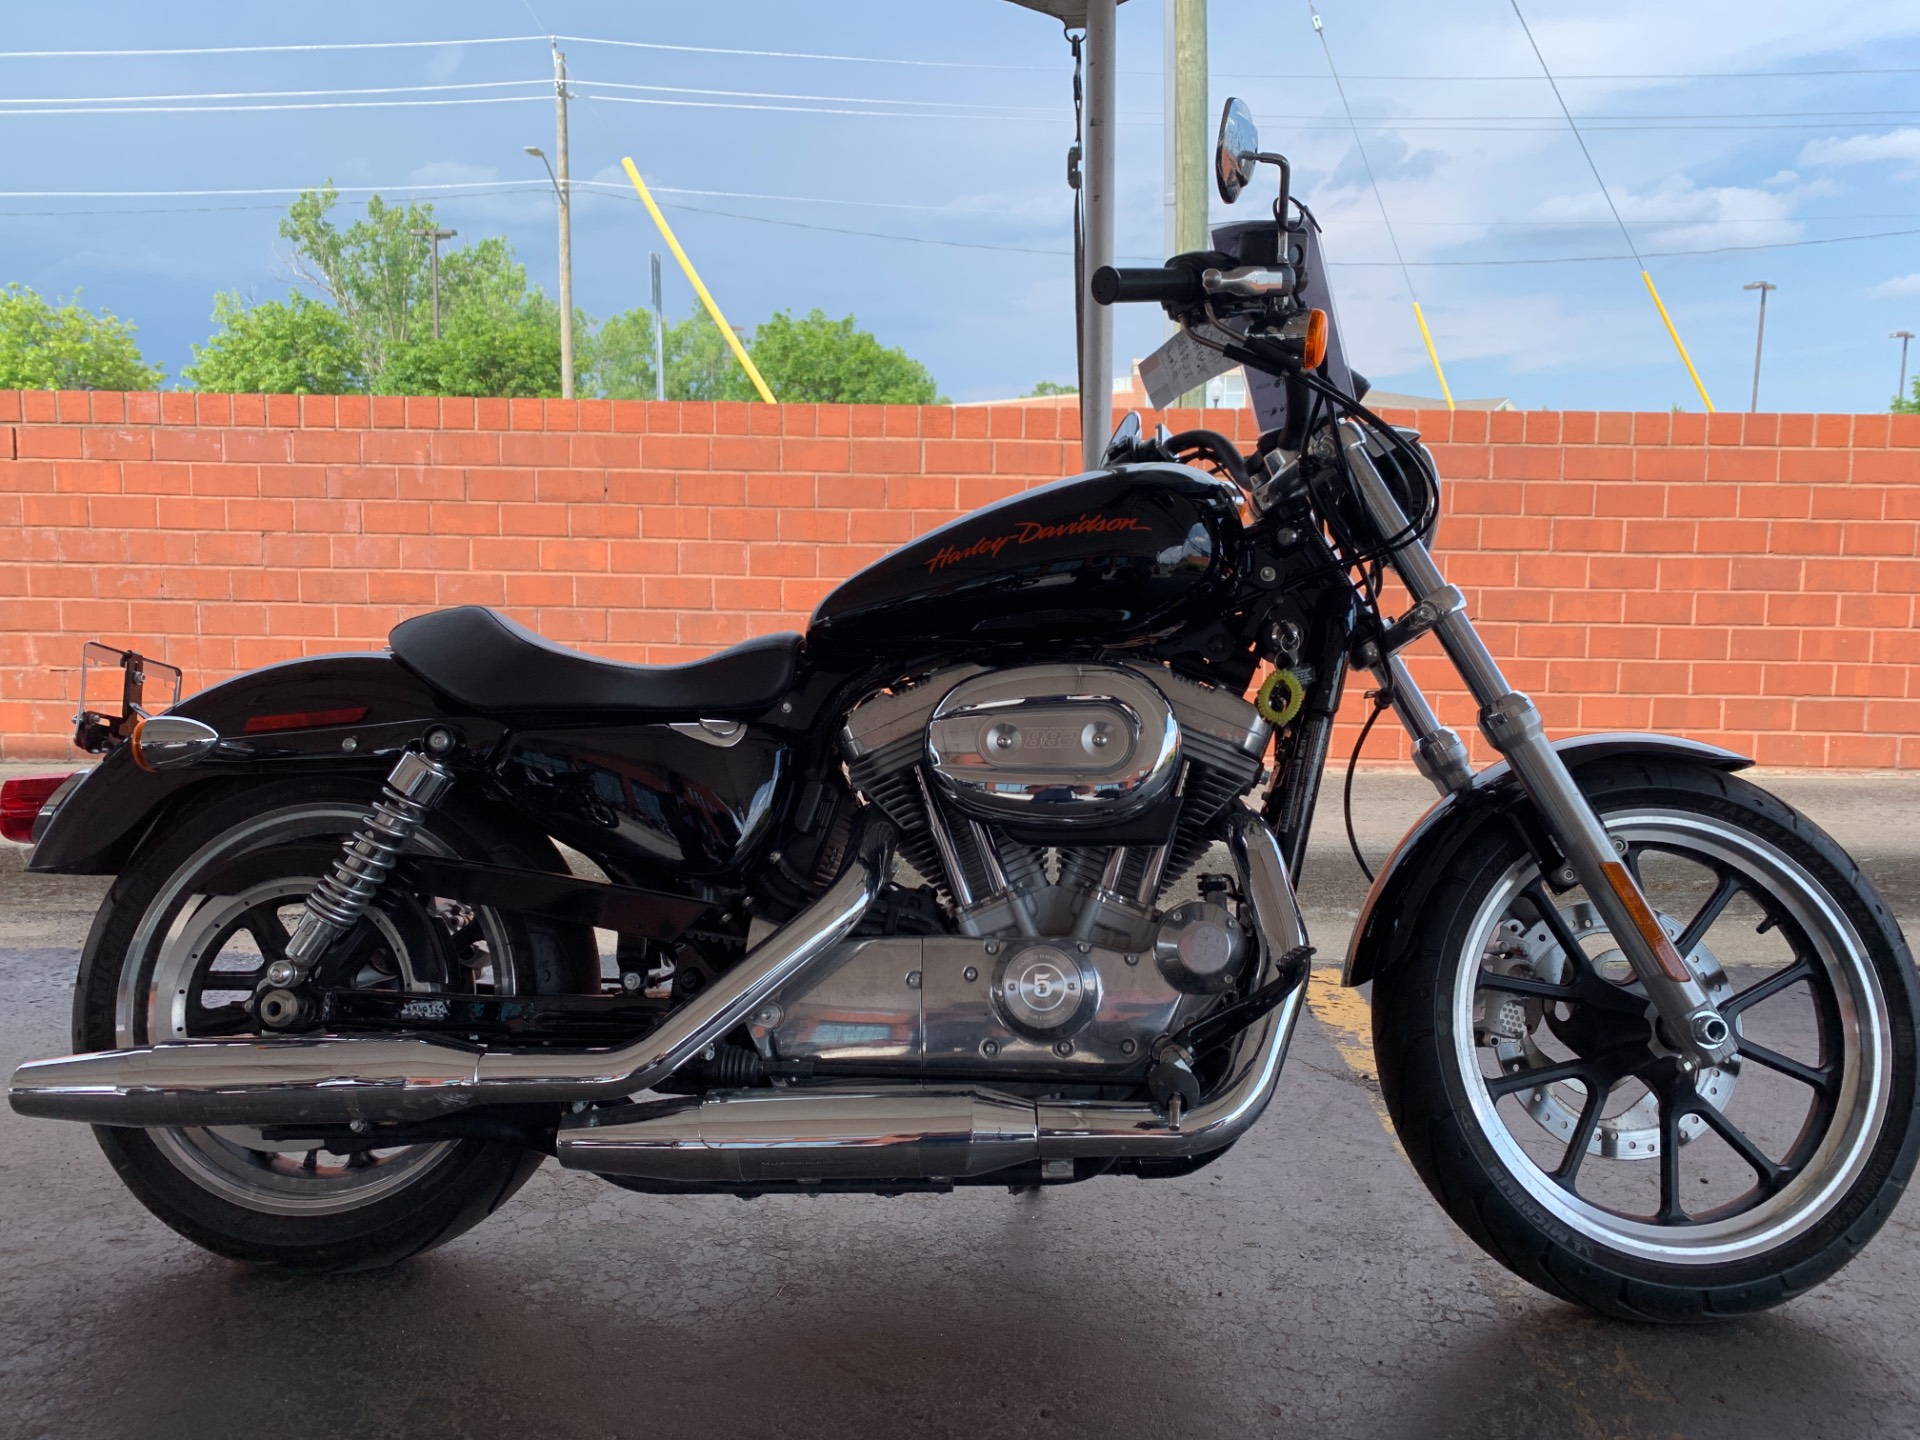 2014 Harley-Davidson XL883L in Waterford, Michigan - Photo 1